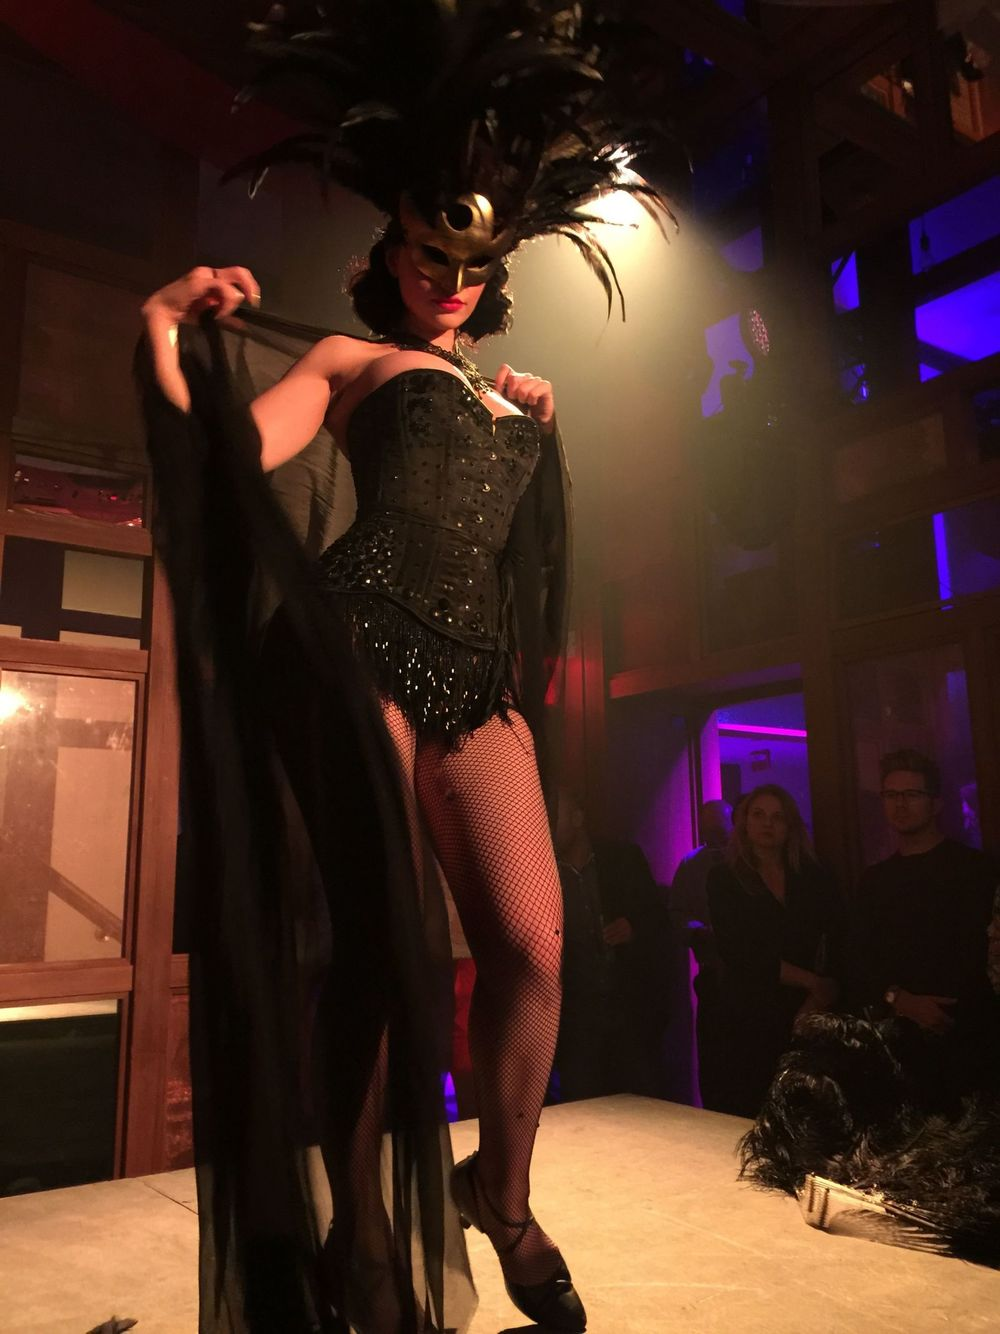 Masked Fetish Dancer